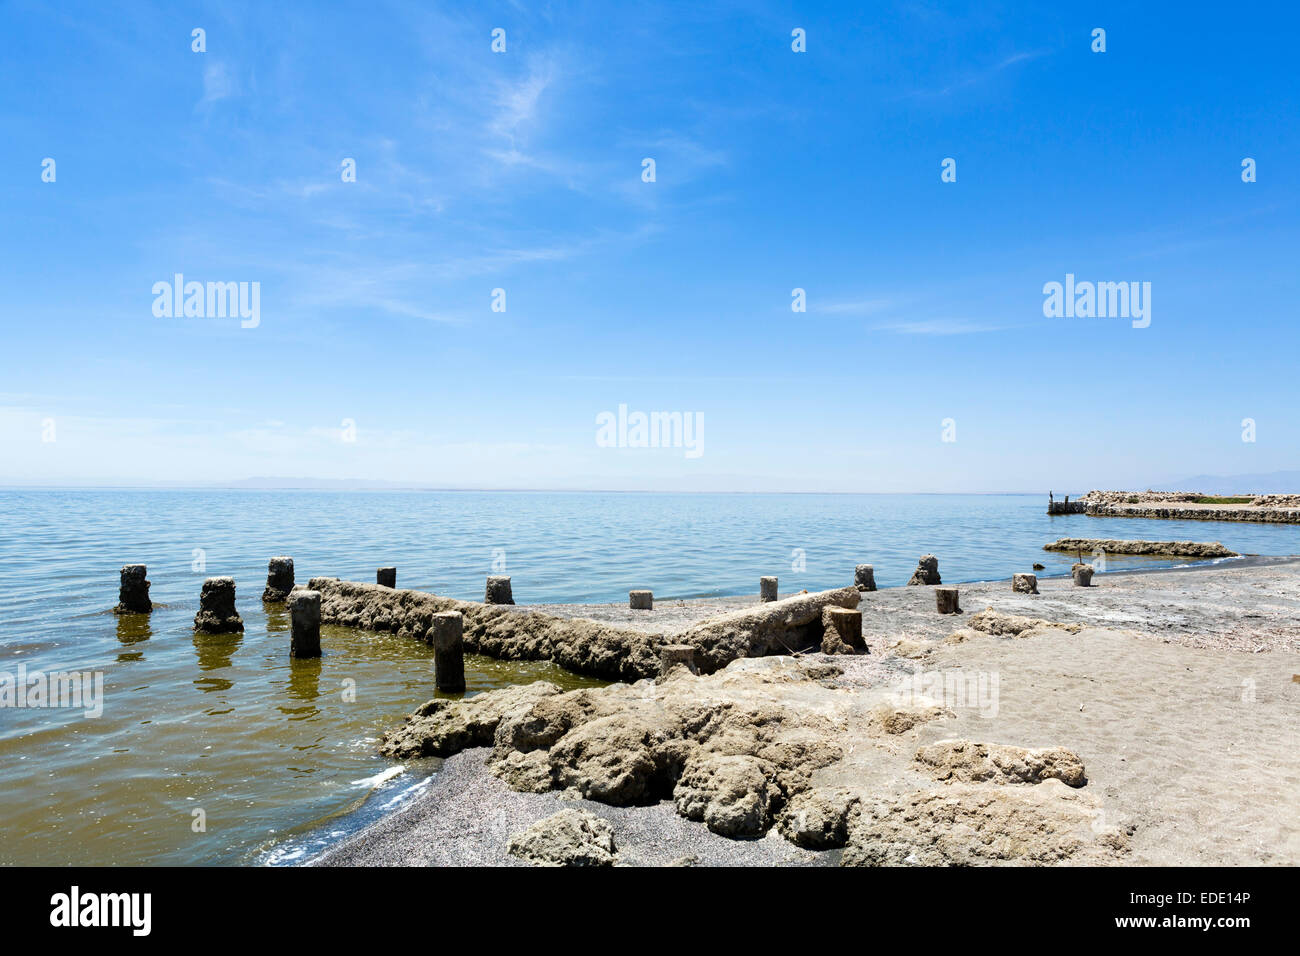 The Salton Sea in Bombay Beach, Imperial County, Kalifornien, USA Stockbild